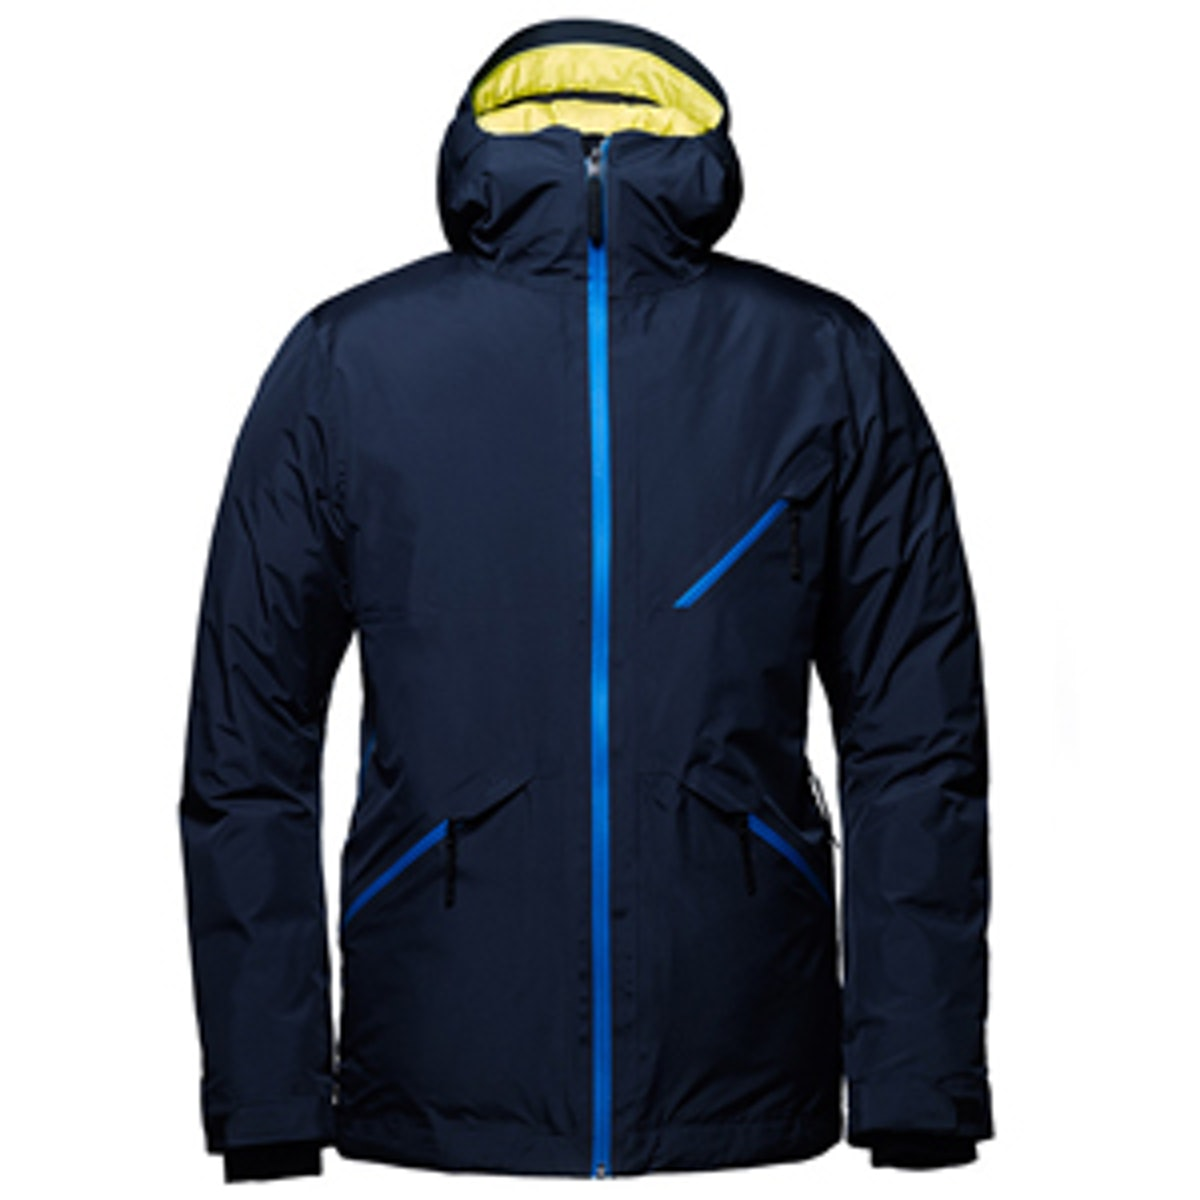 Insulated Jacket